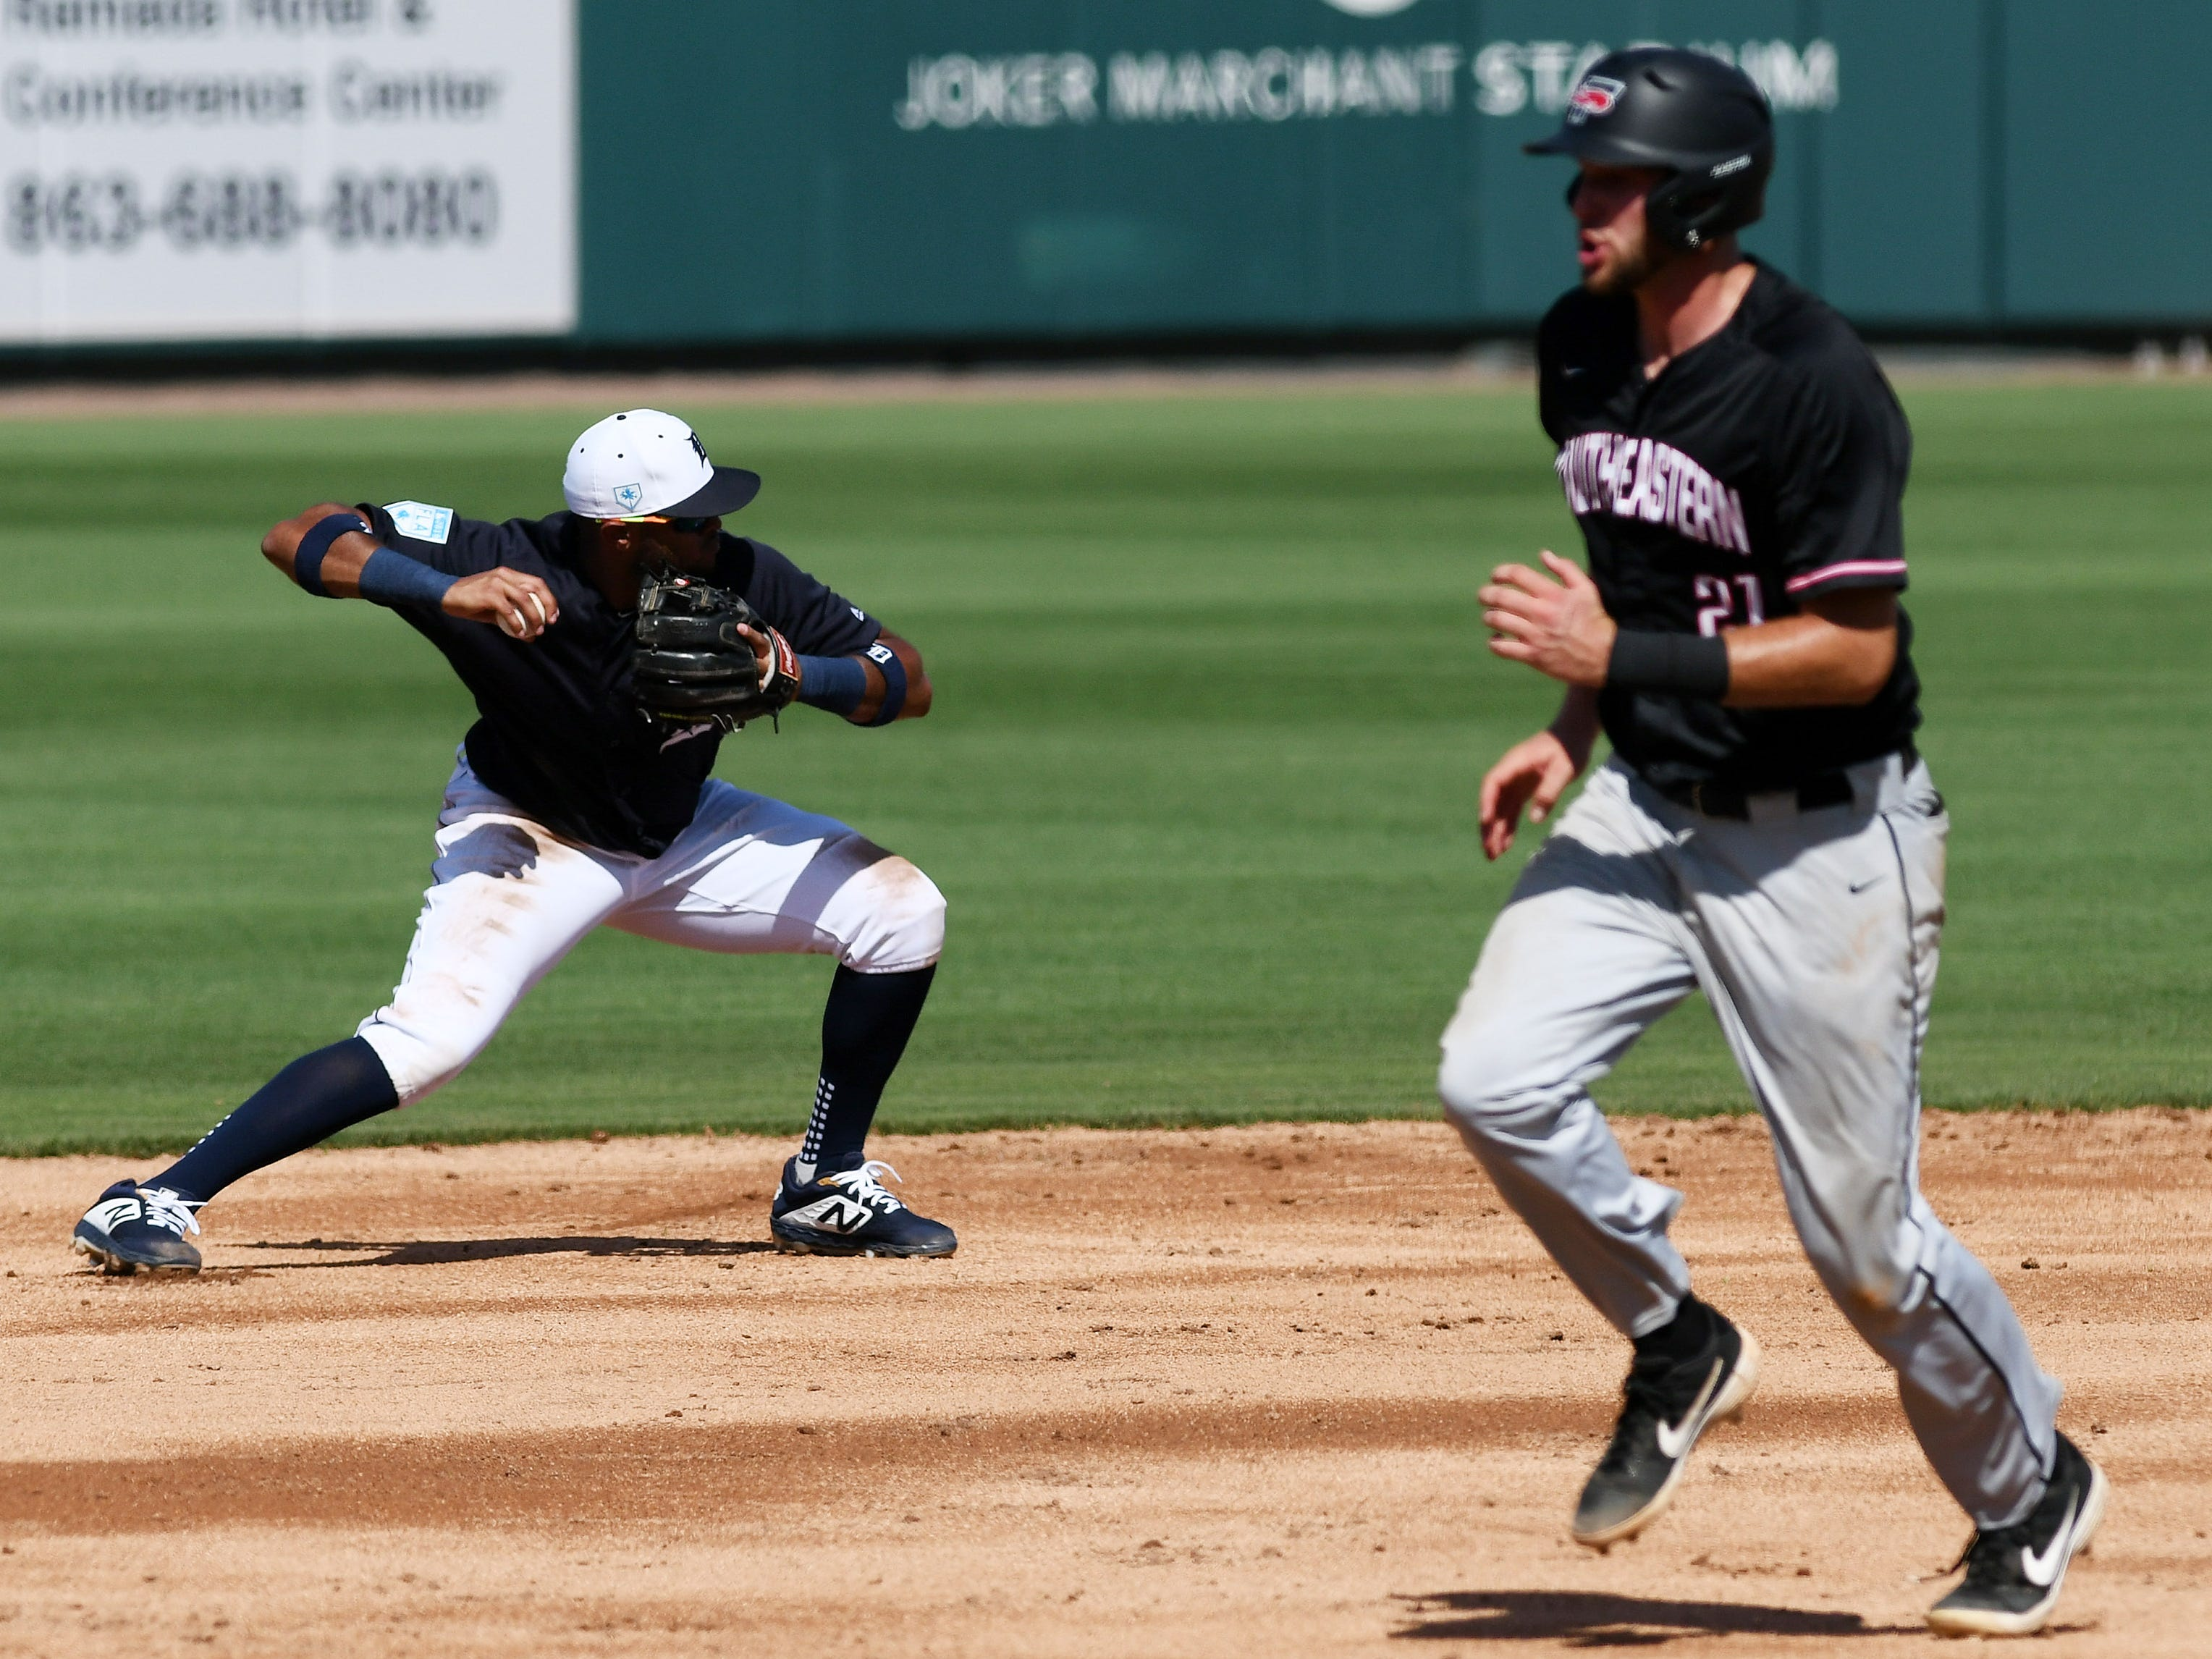 Tigers shortstop Willi Castro throws to second base in the fourth inning.